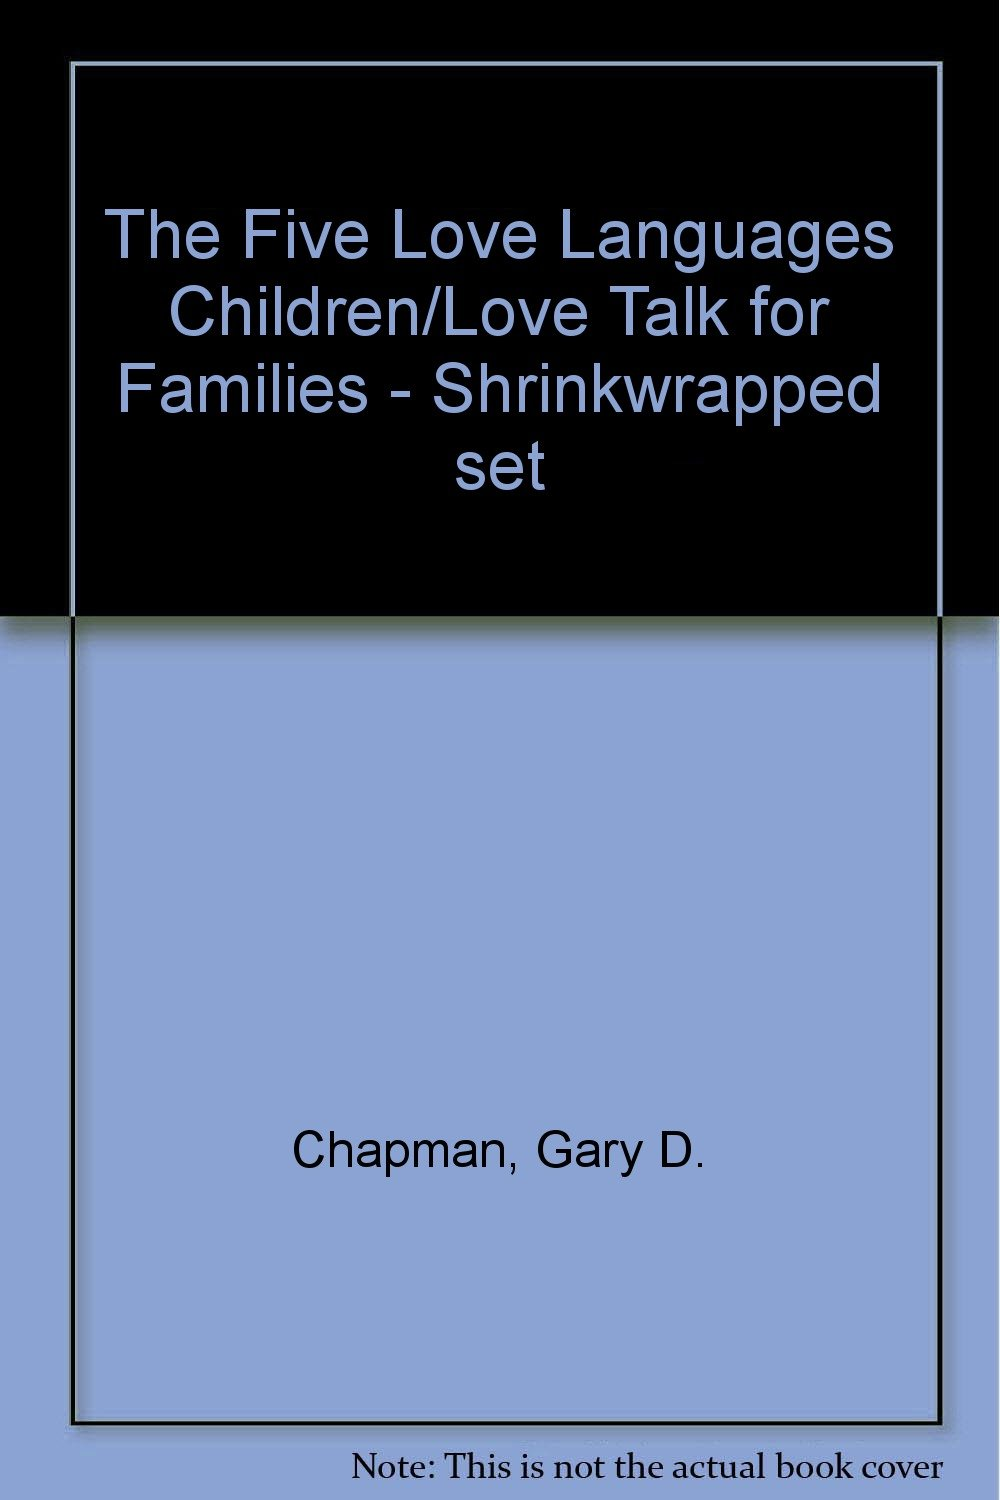 The Five Love Languages Children/Love Talk for Families - Shrinkwrapped set by Moody Publishers